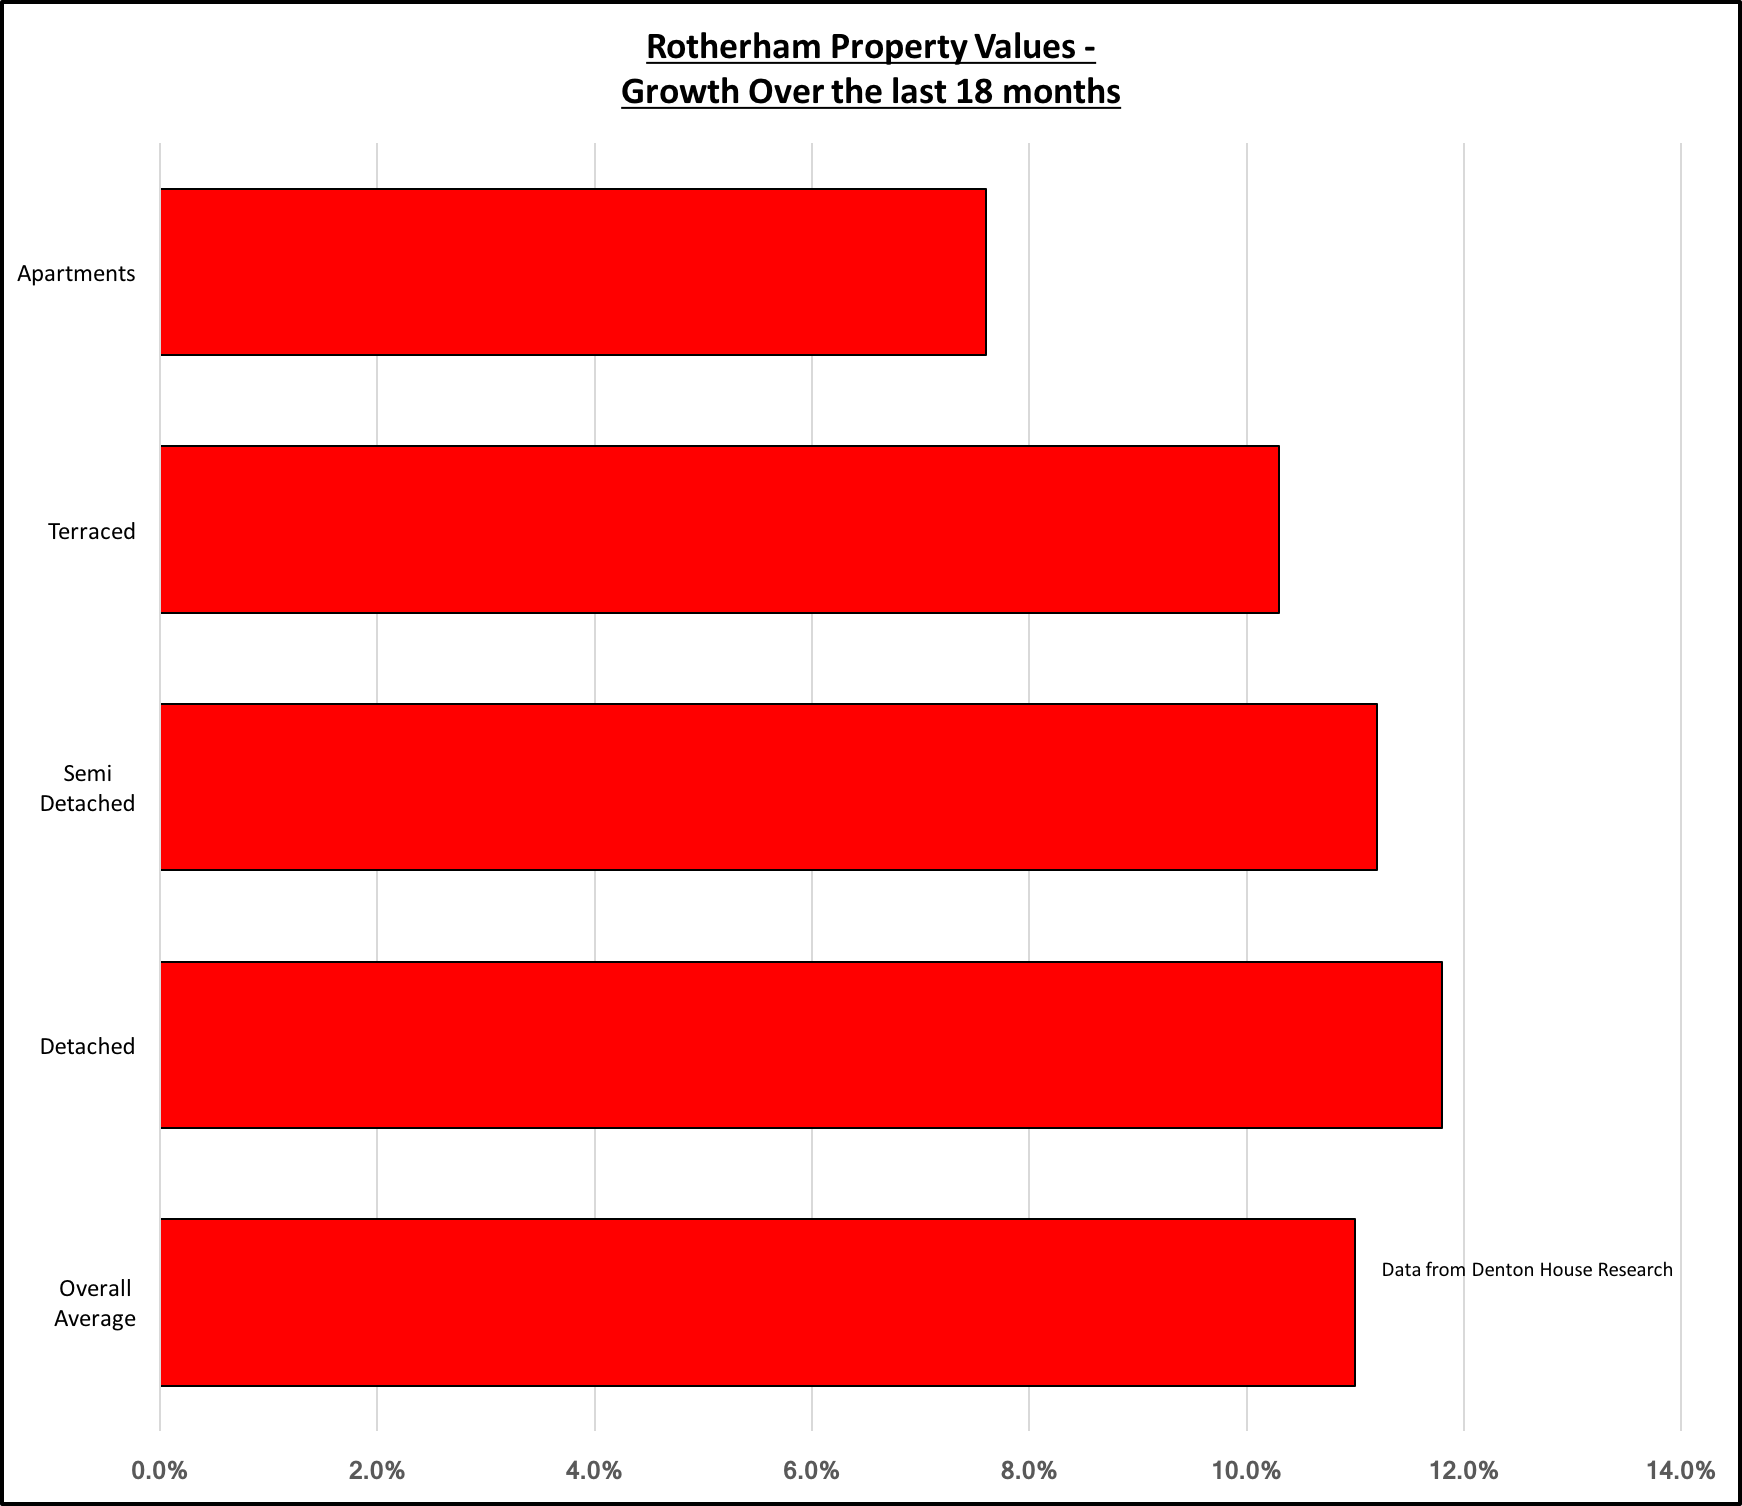 Rotherham Property Prices - 18 month growth patterns